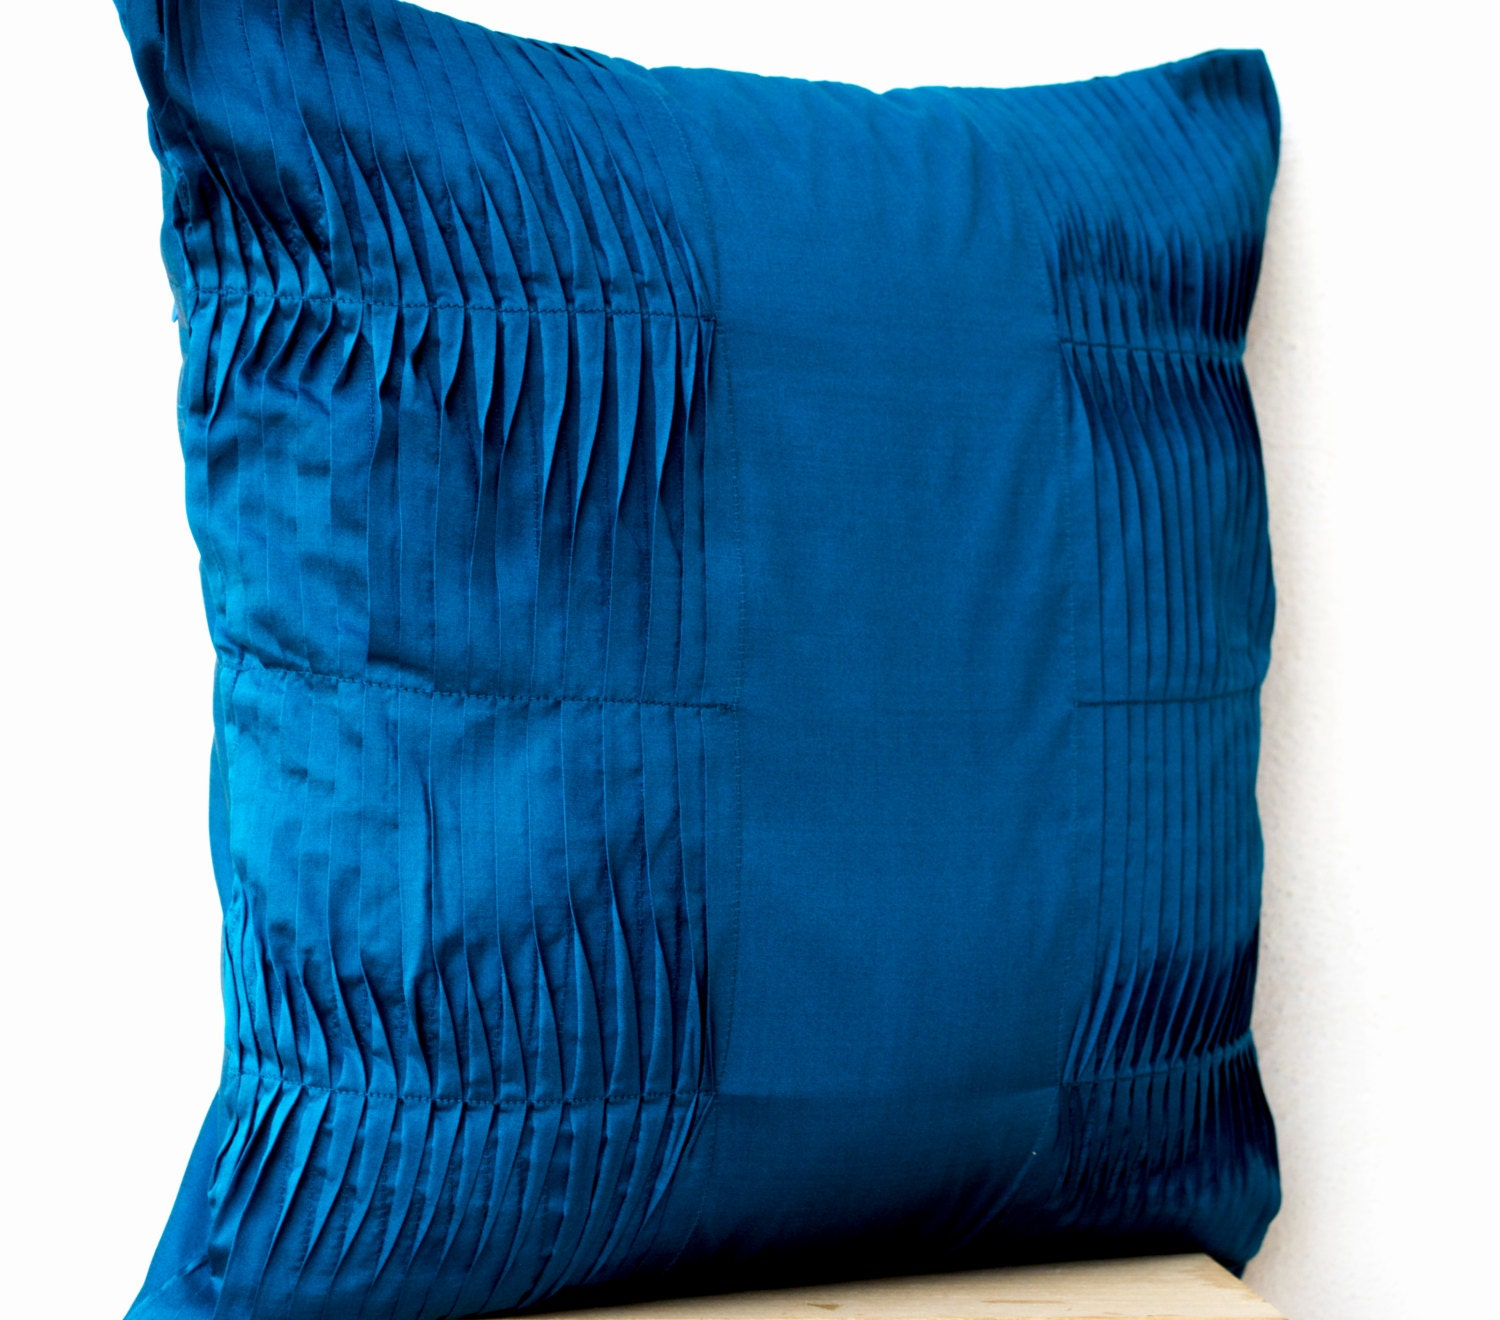 Decorative Cushion Turquoise Blue Pillow Cover Cotton Throw